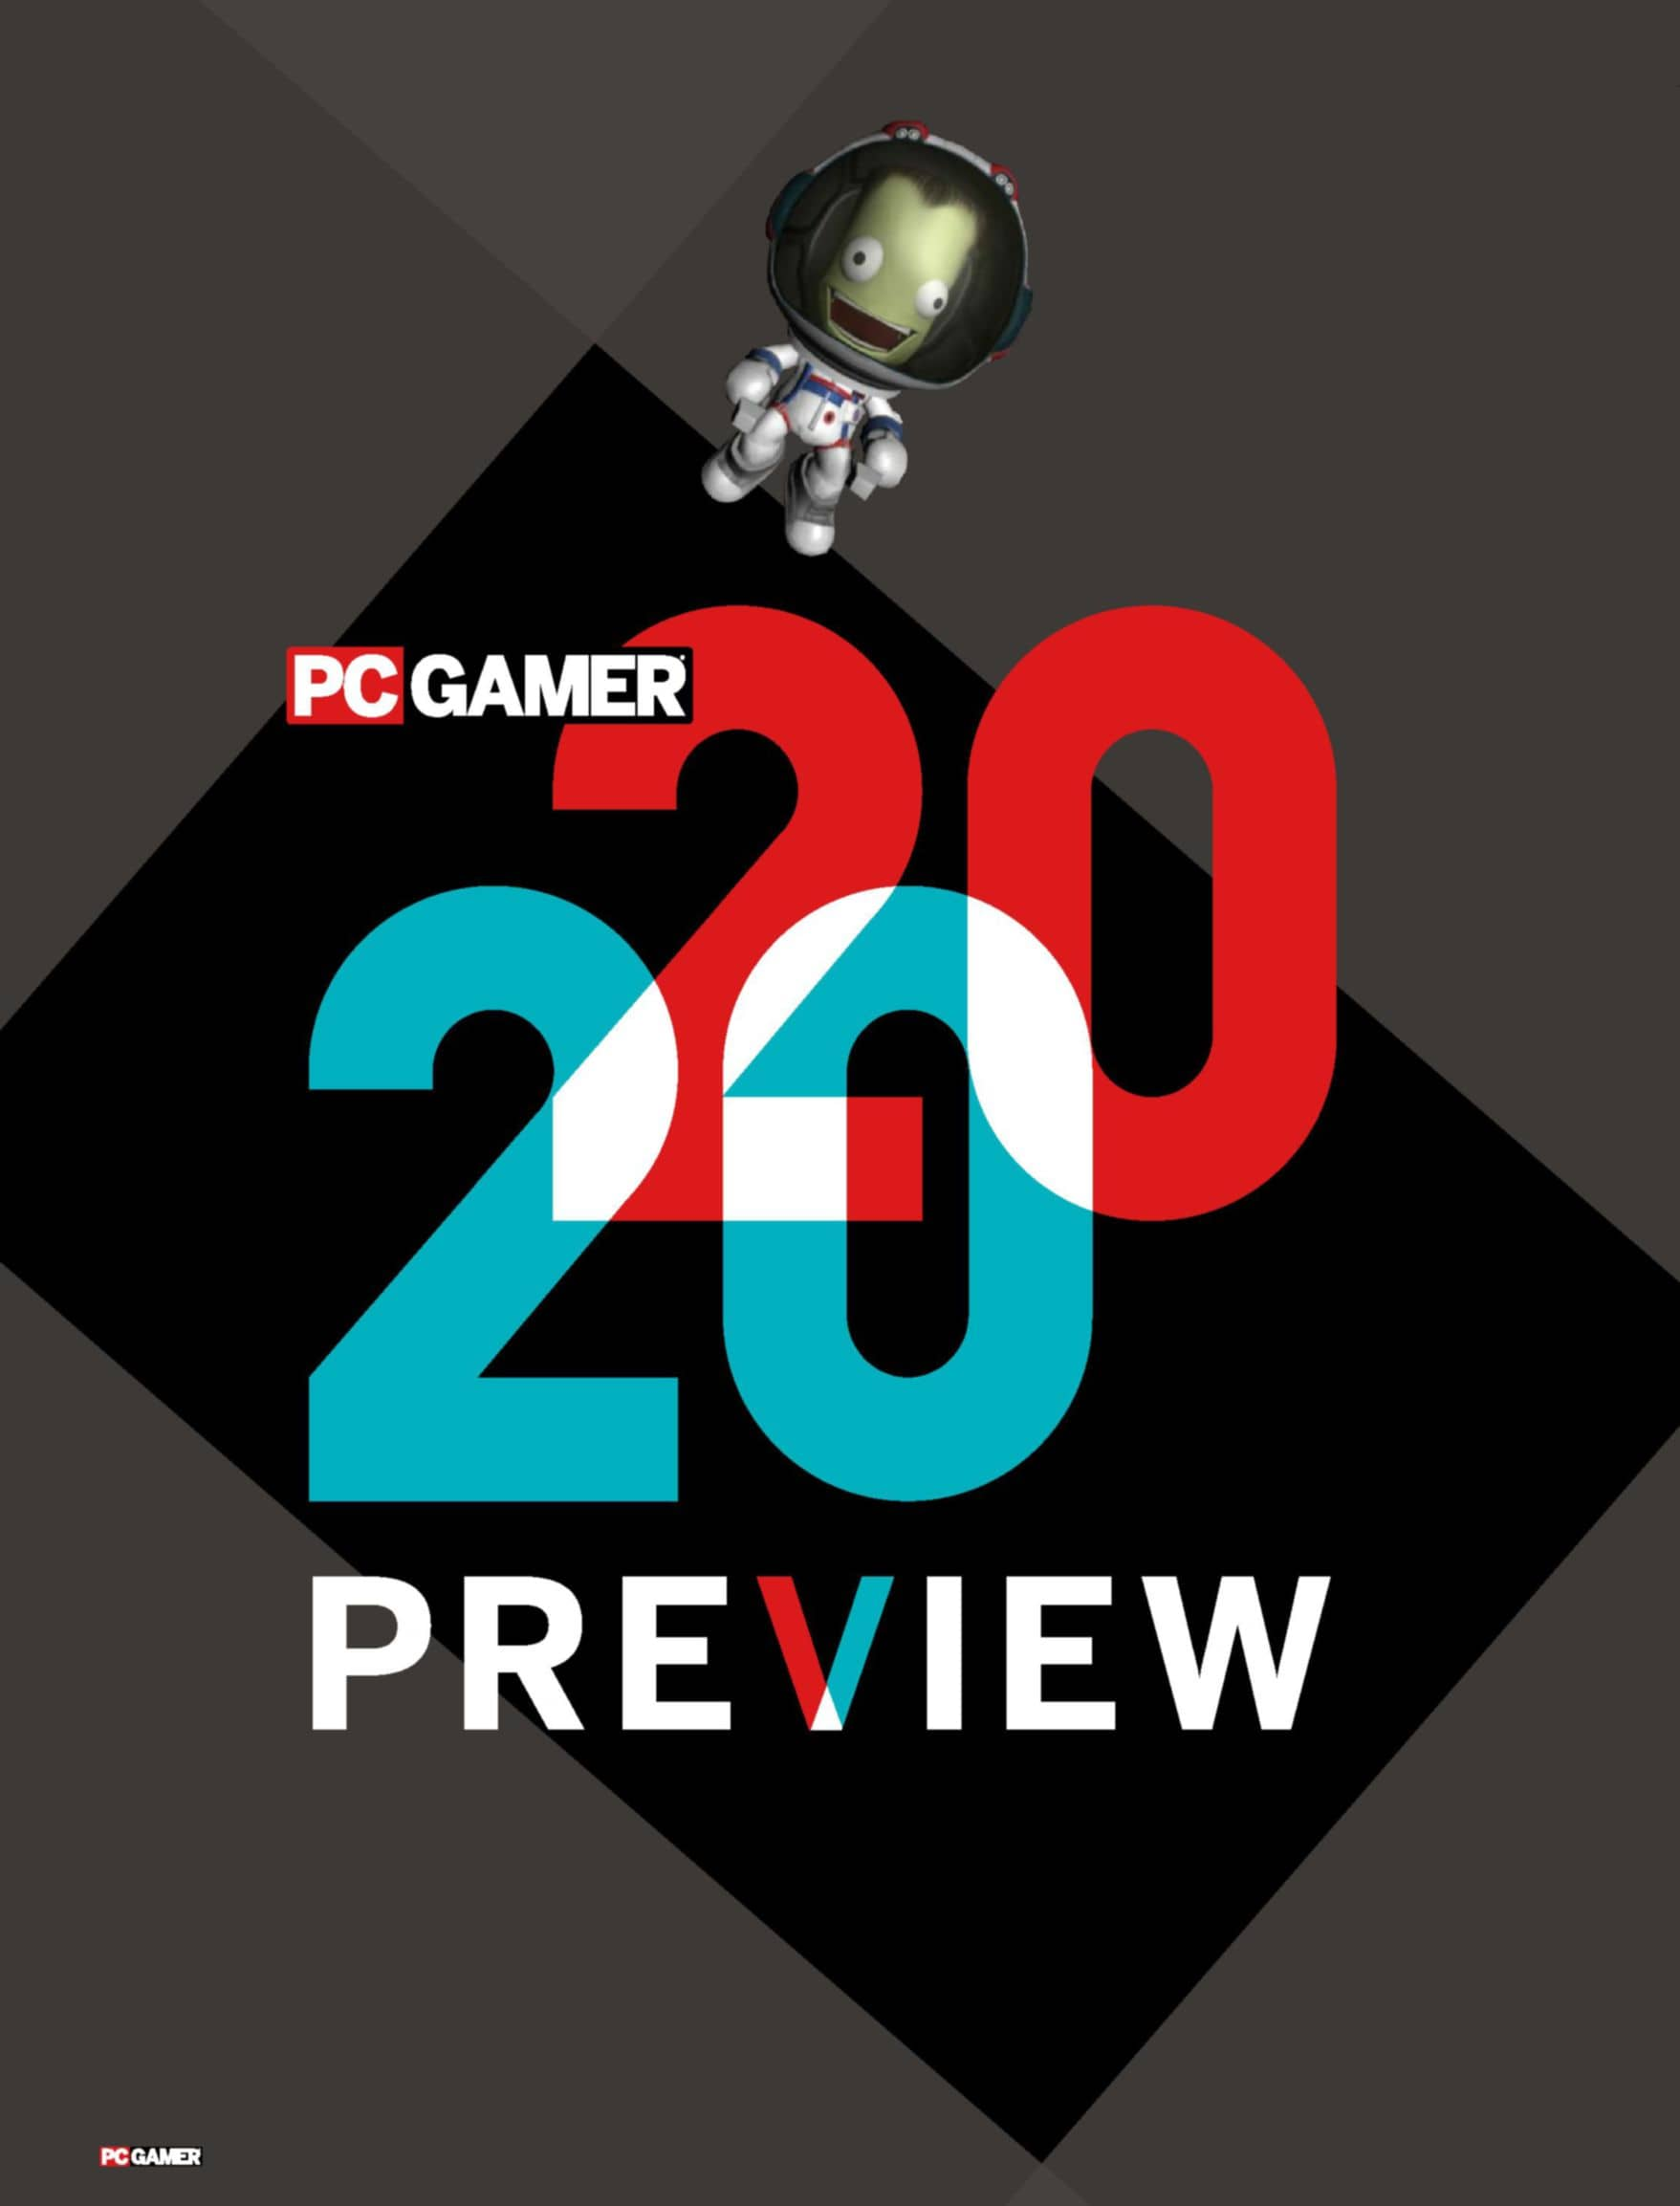 PC Gamer 2020 Preview